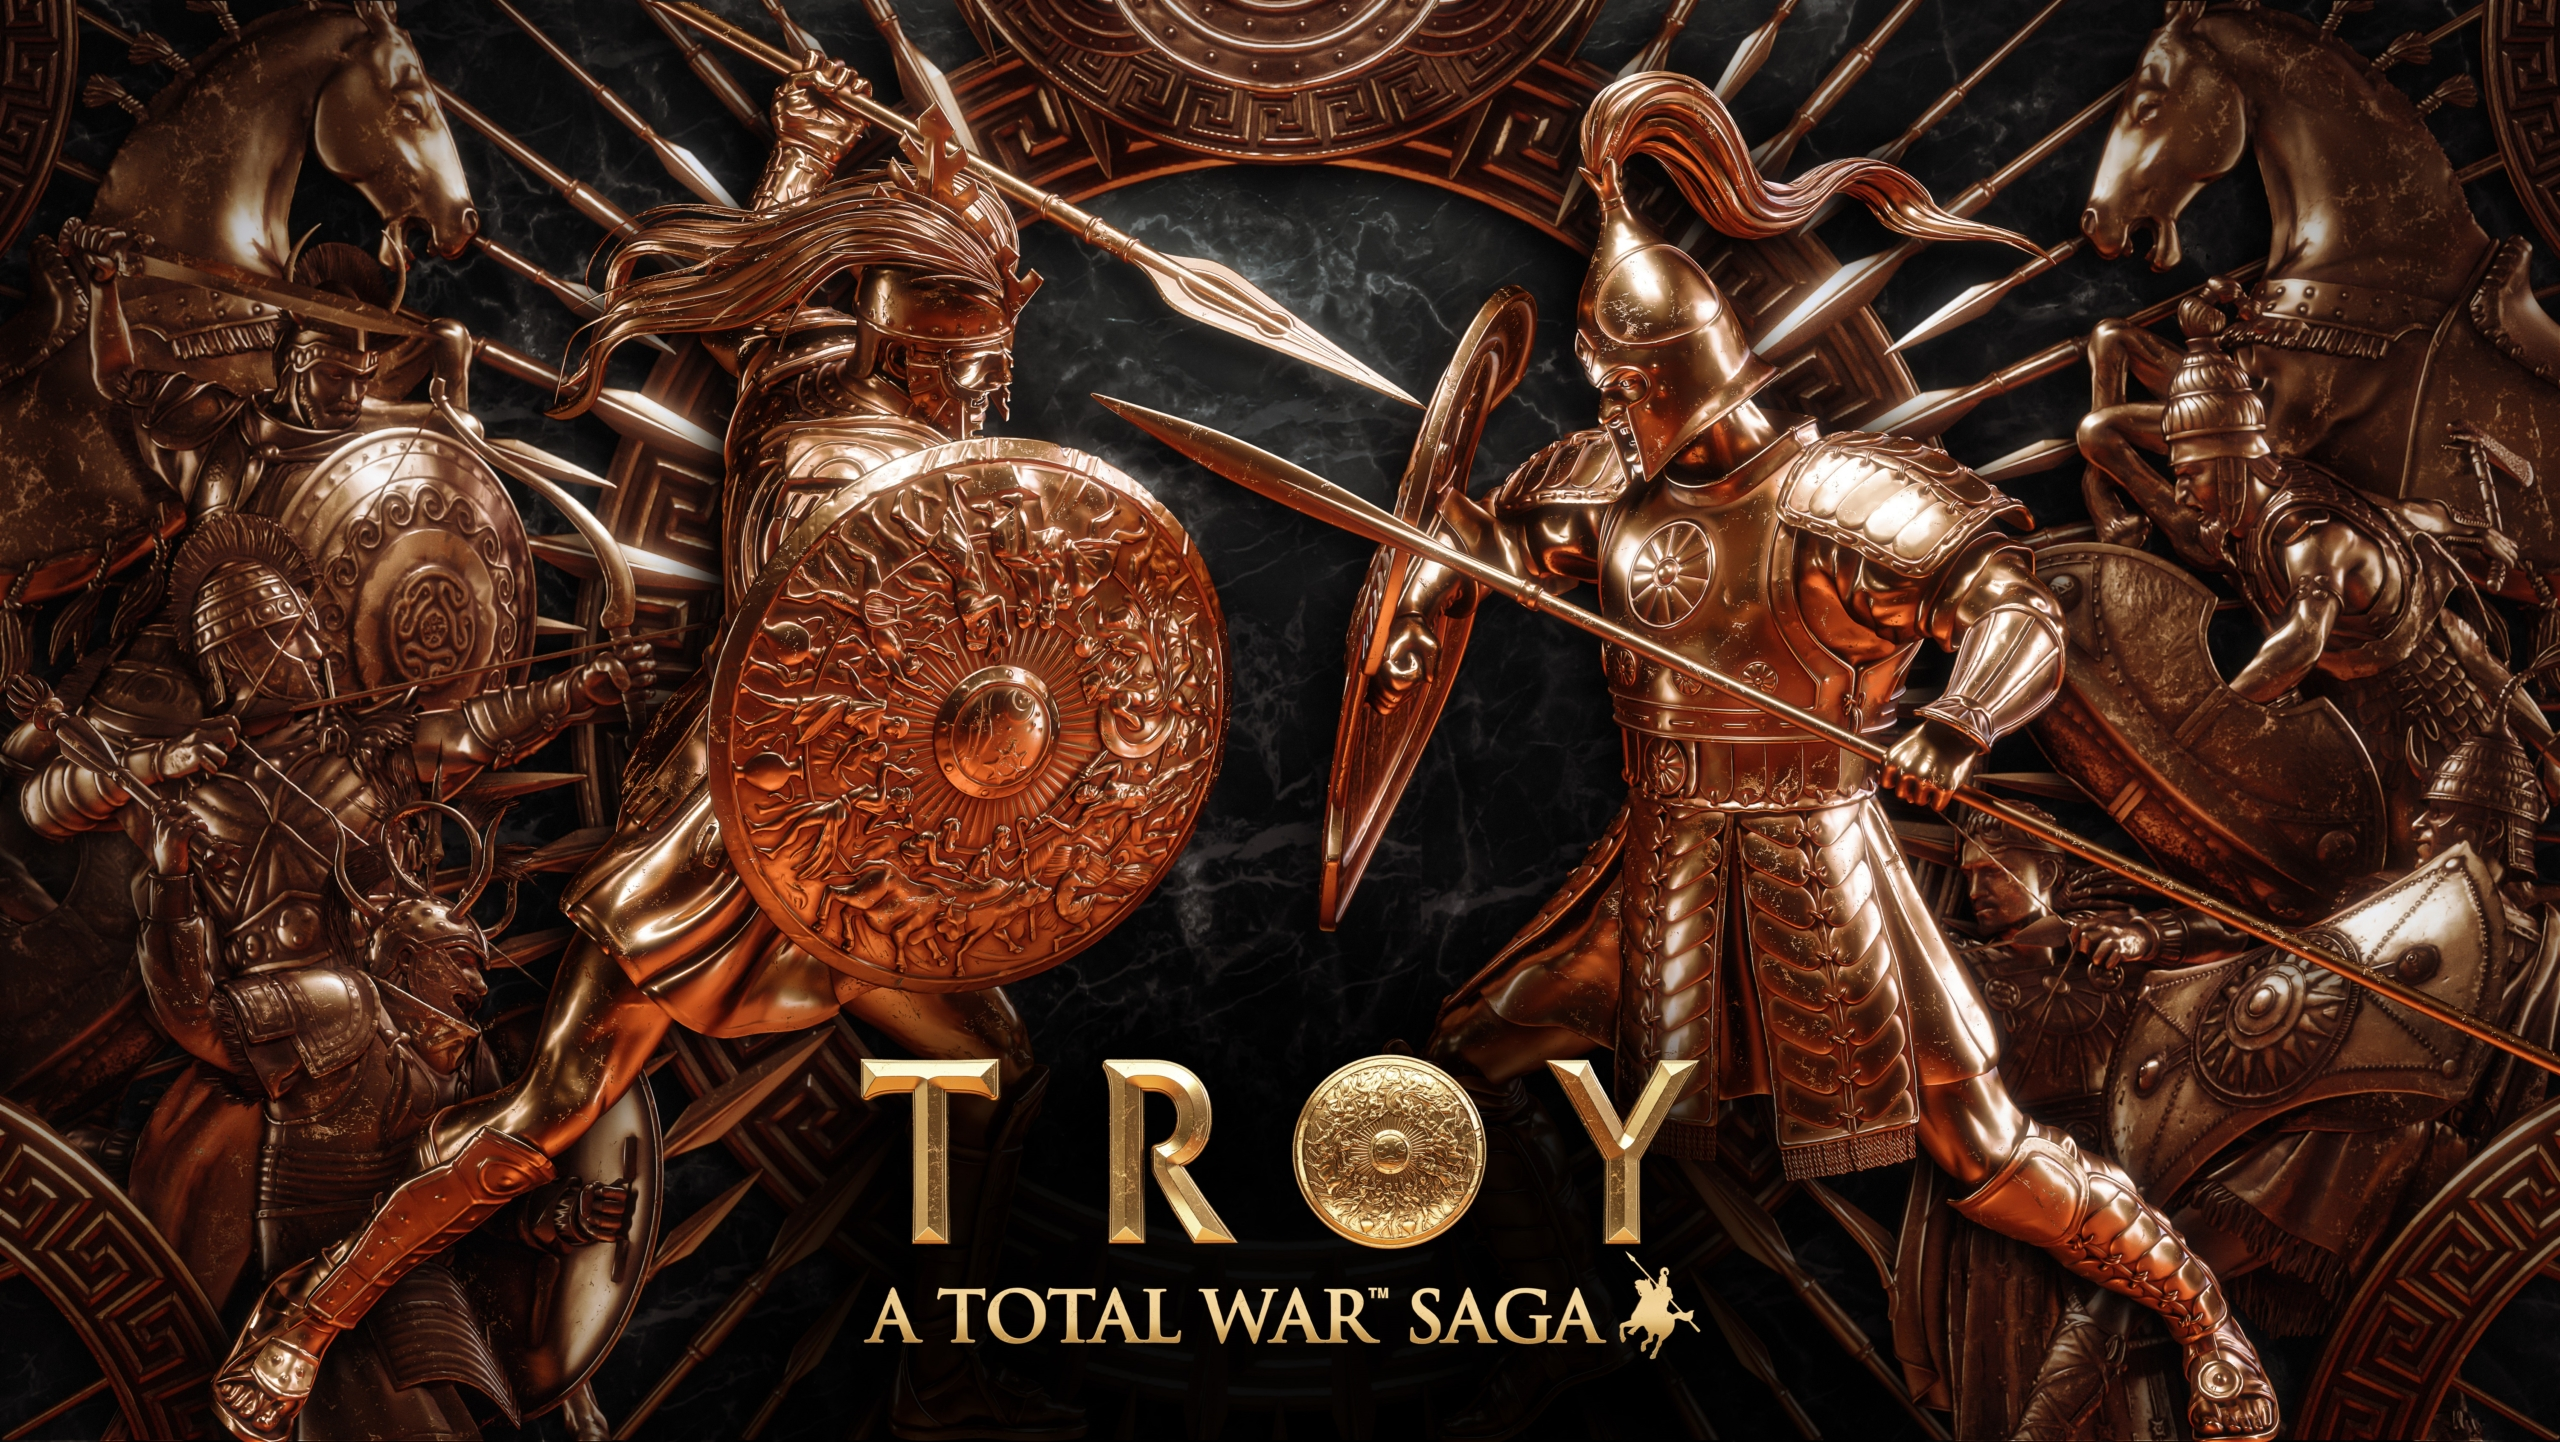 TROY: A Total War Saga